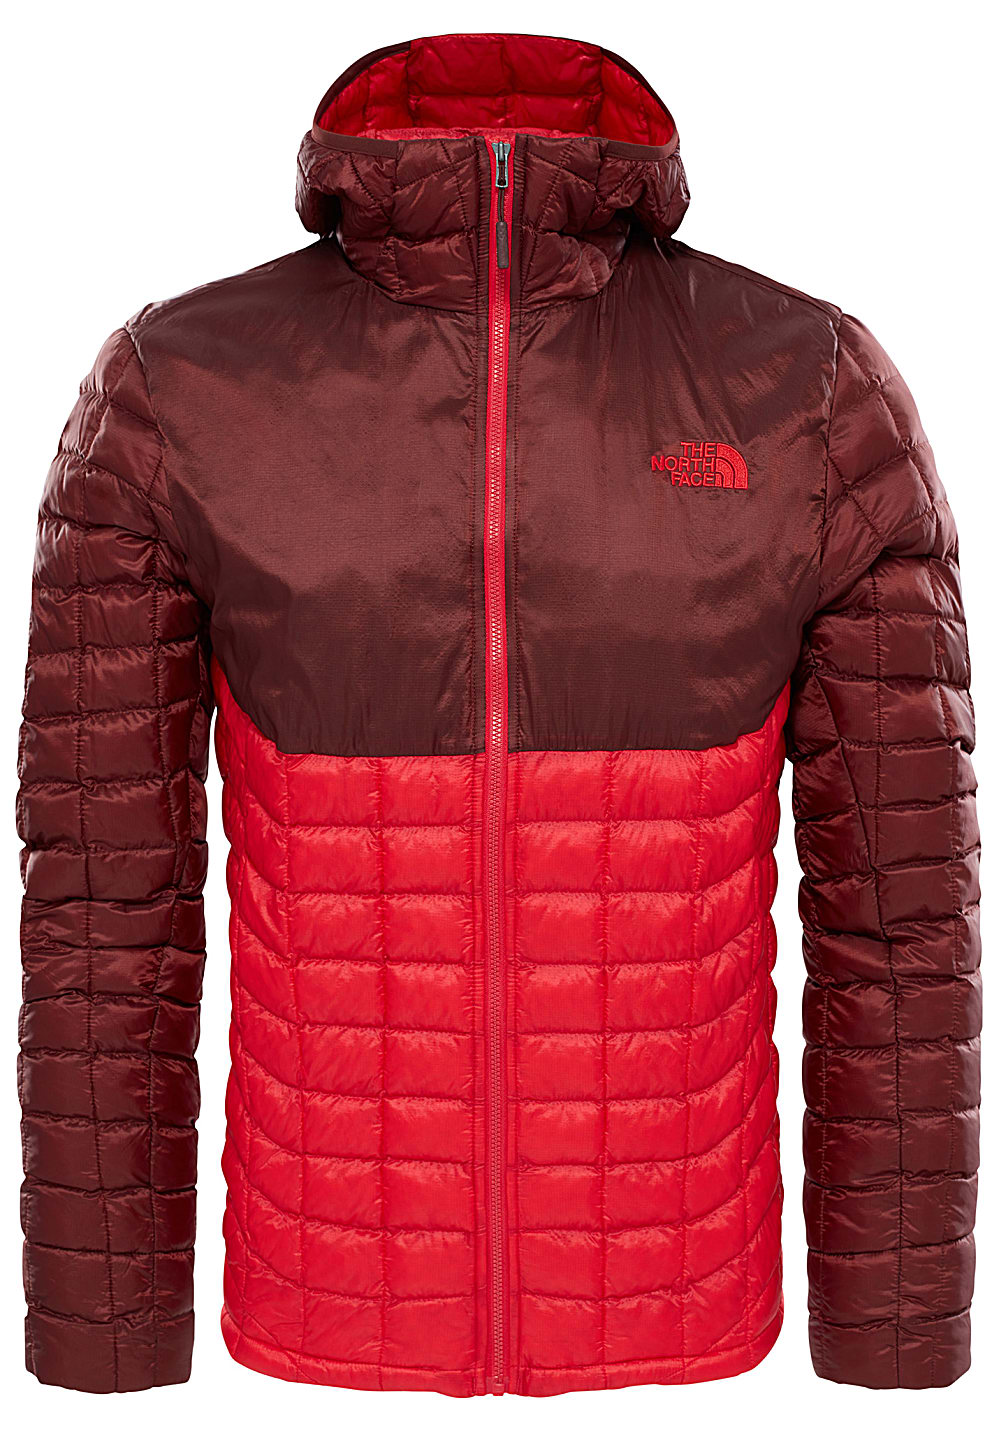 Outdoorjacke herren the north face